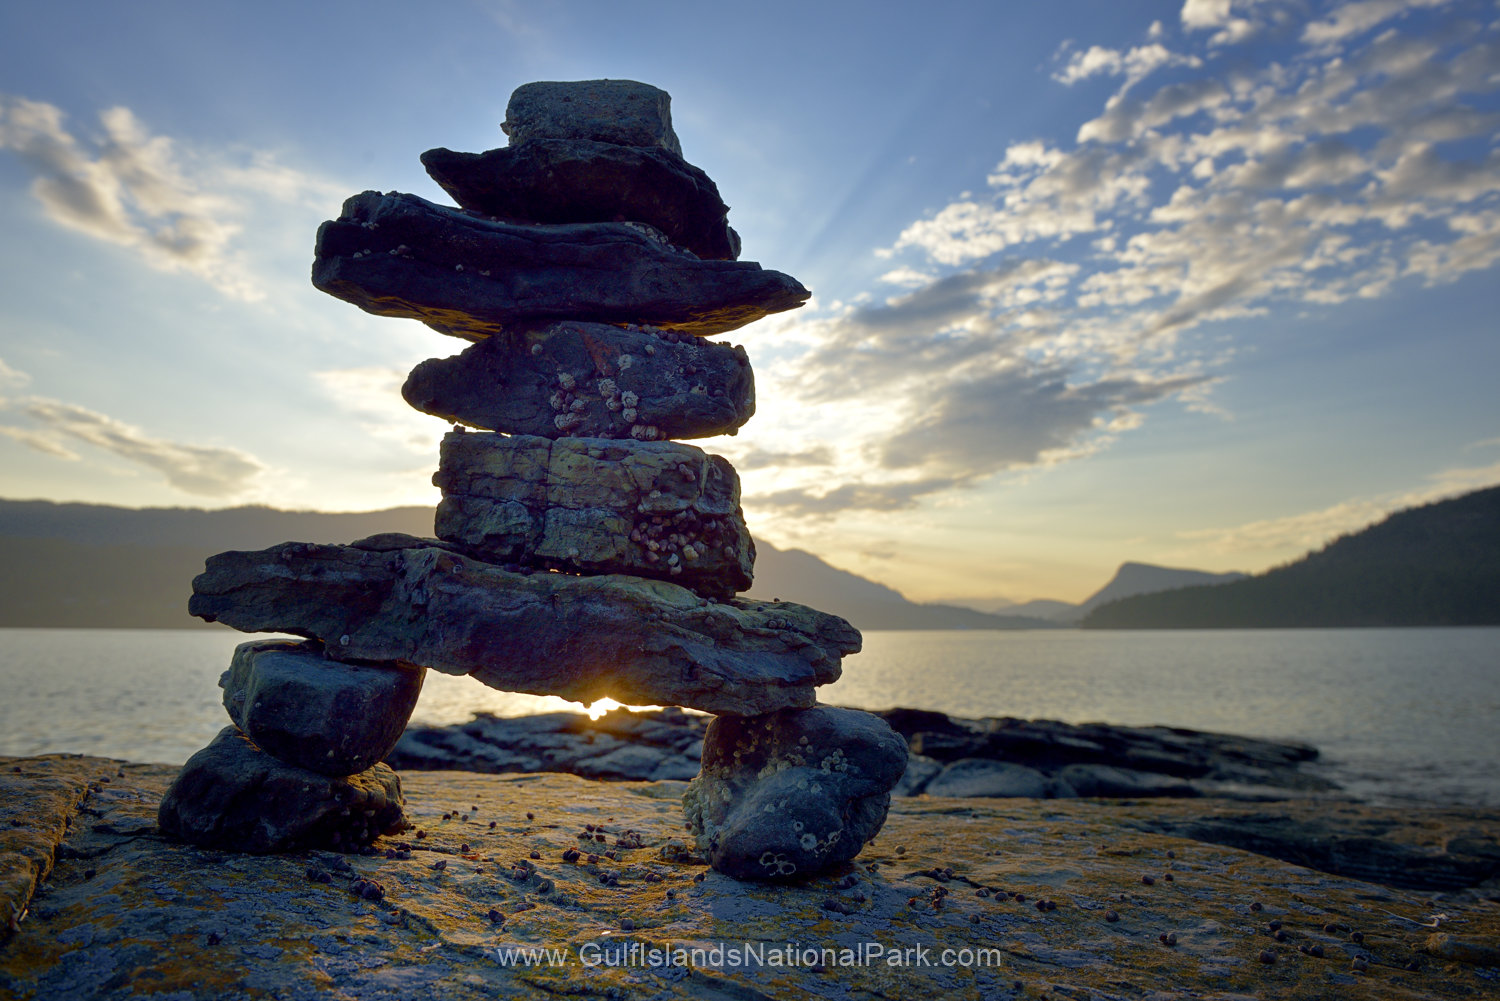 Rock inukshuk in front of Salt Spring Island, Russell Island, British Columbia, Canada